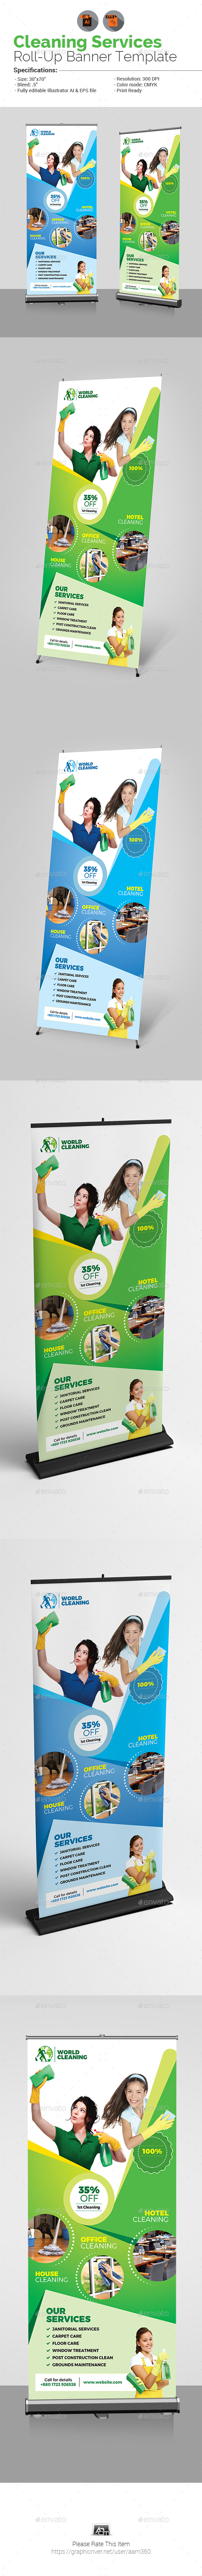 Cleaning Services Roll-Up Banner - Signage Print Templates